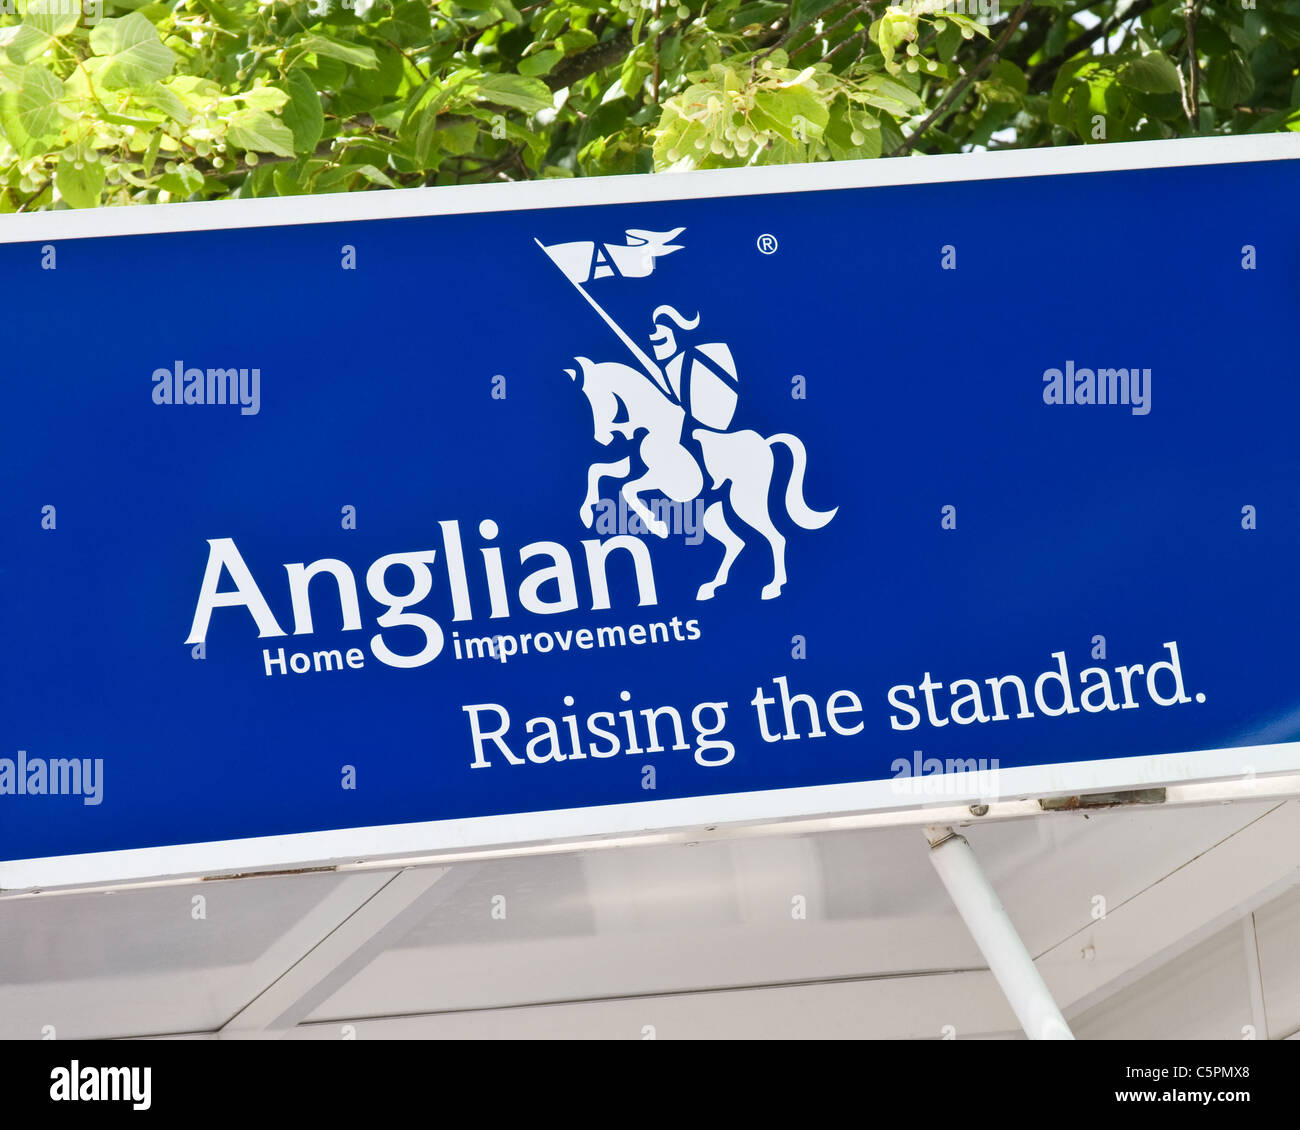 Anglian Home Improvements Sign Stock Photo Alamy